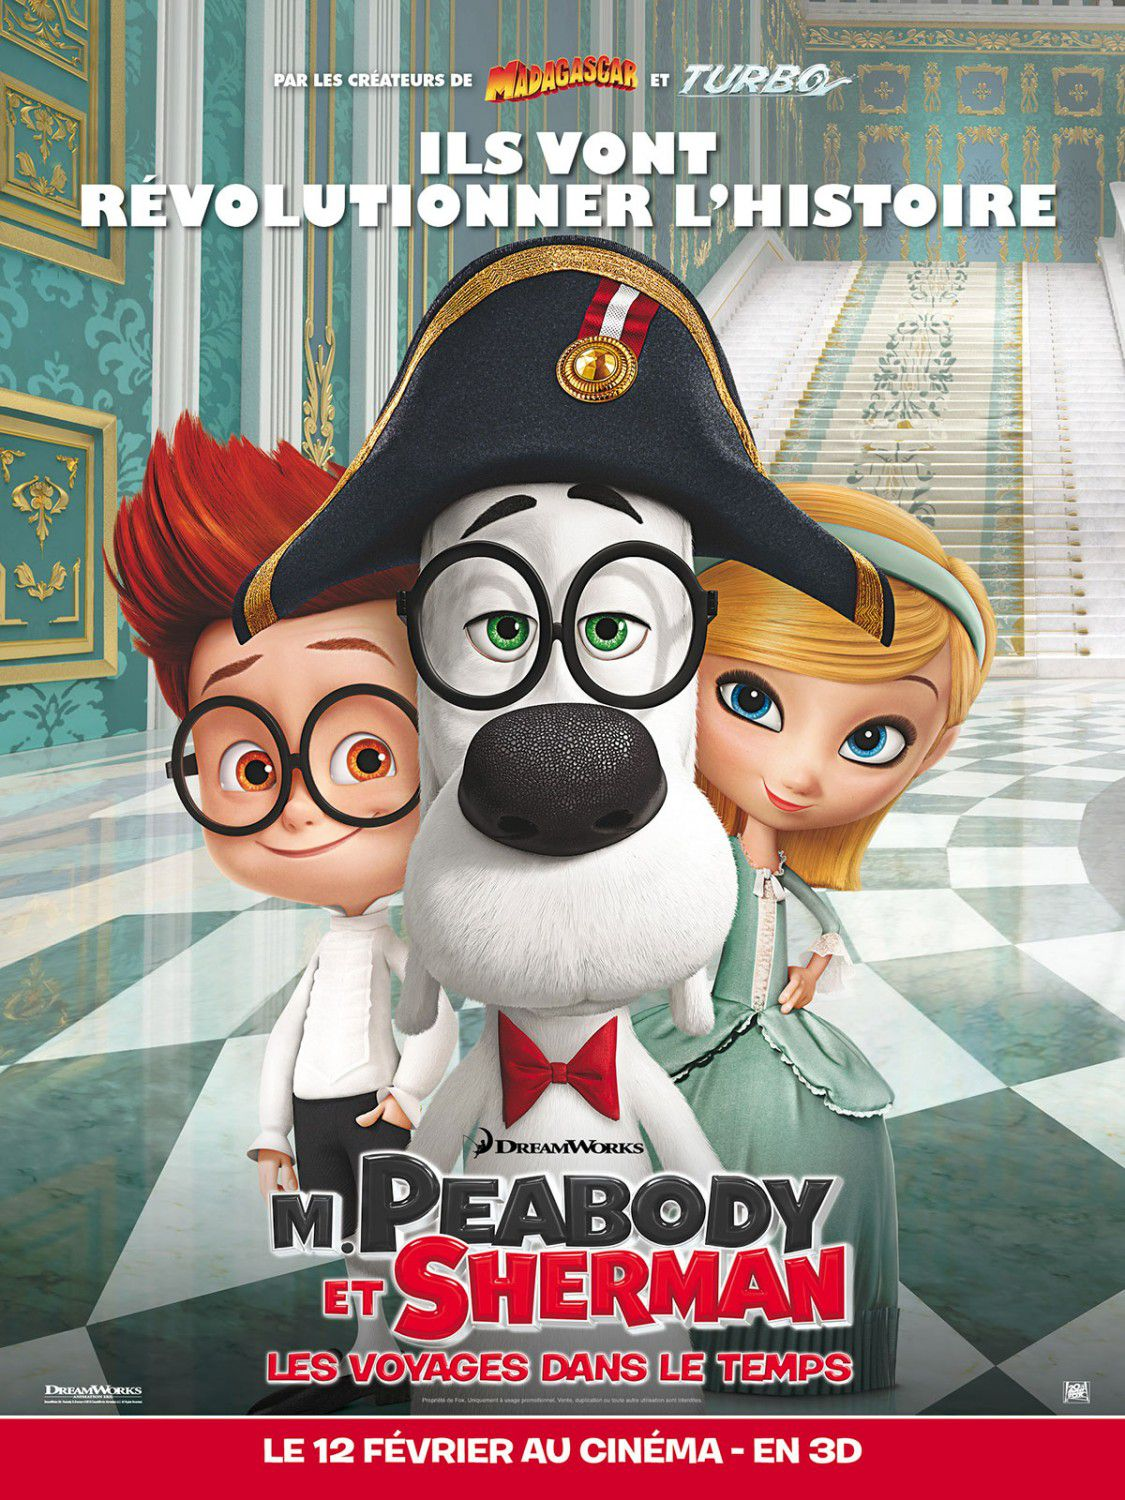 Mr Peabody and Sherman - animate film poster - Napoleon - Napoleone